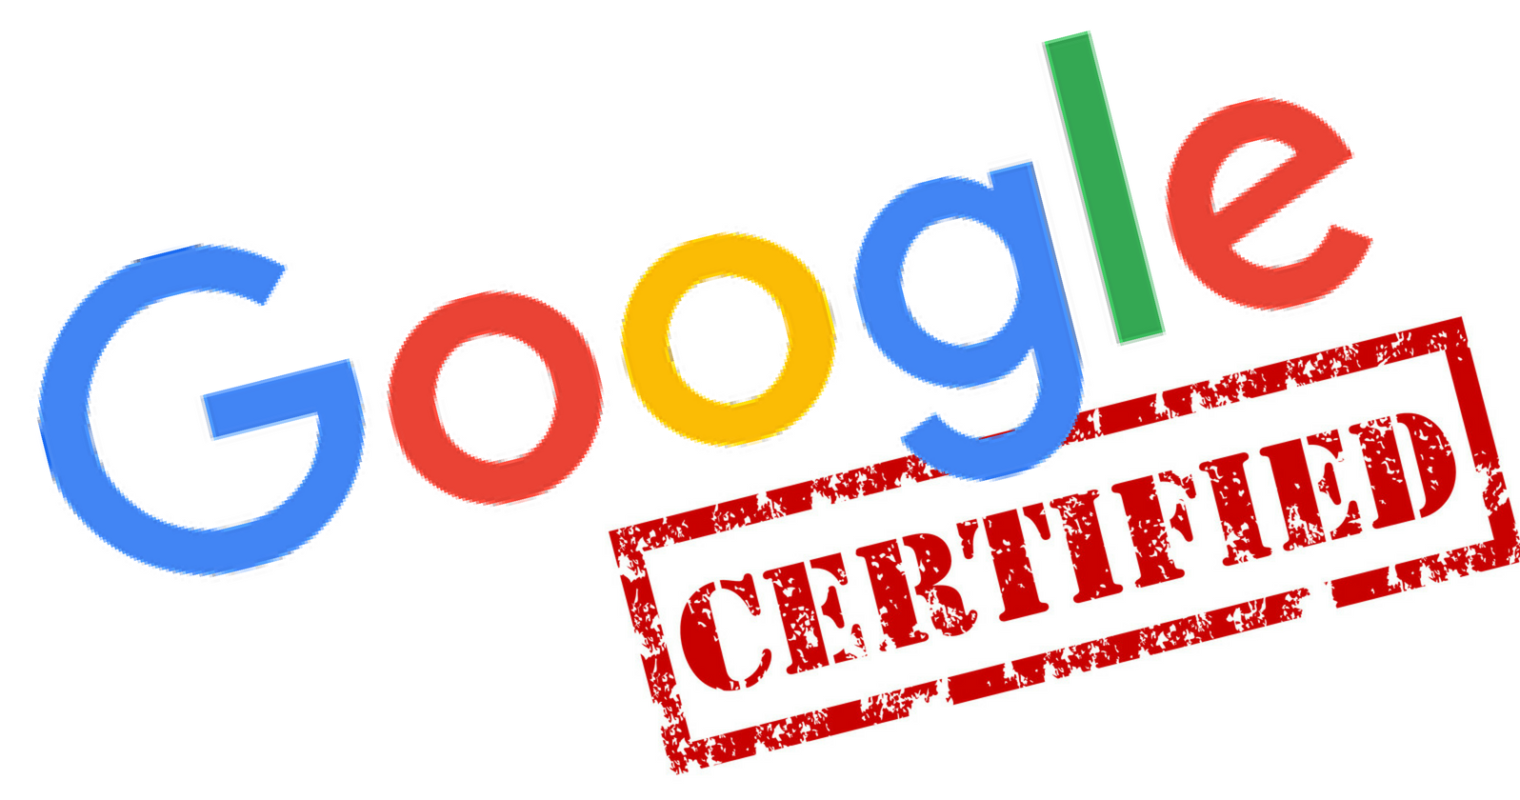 Now You Can Become a Google Certified Mobile Site Developer